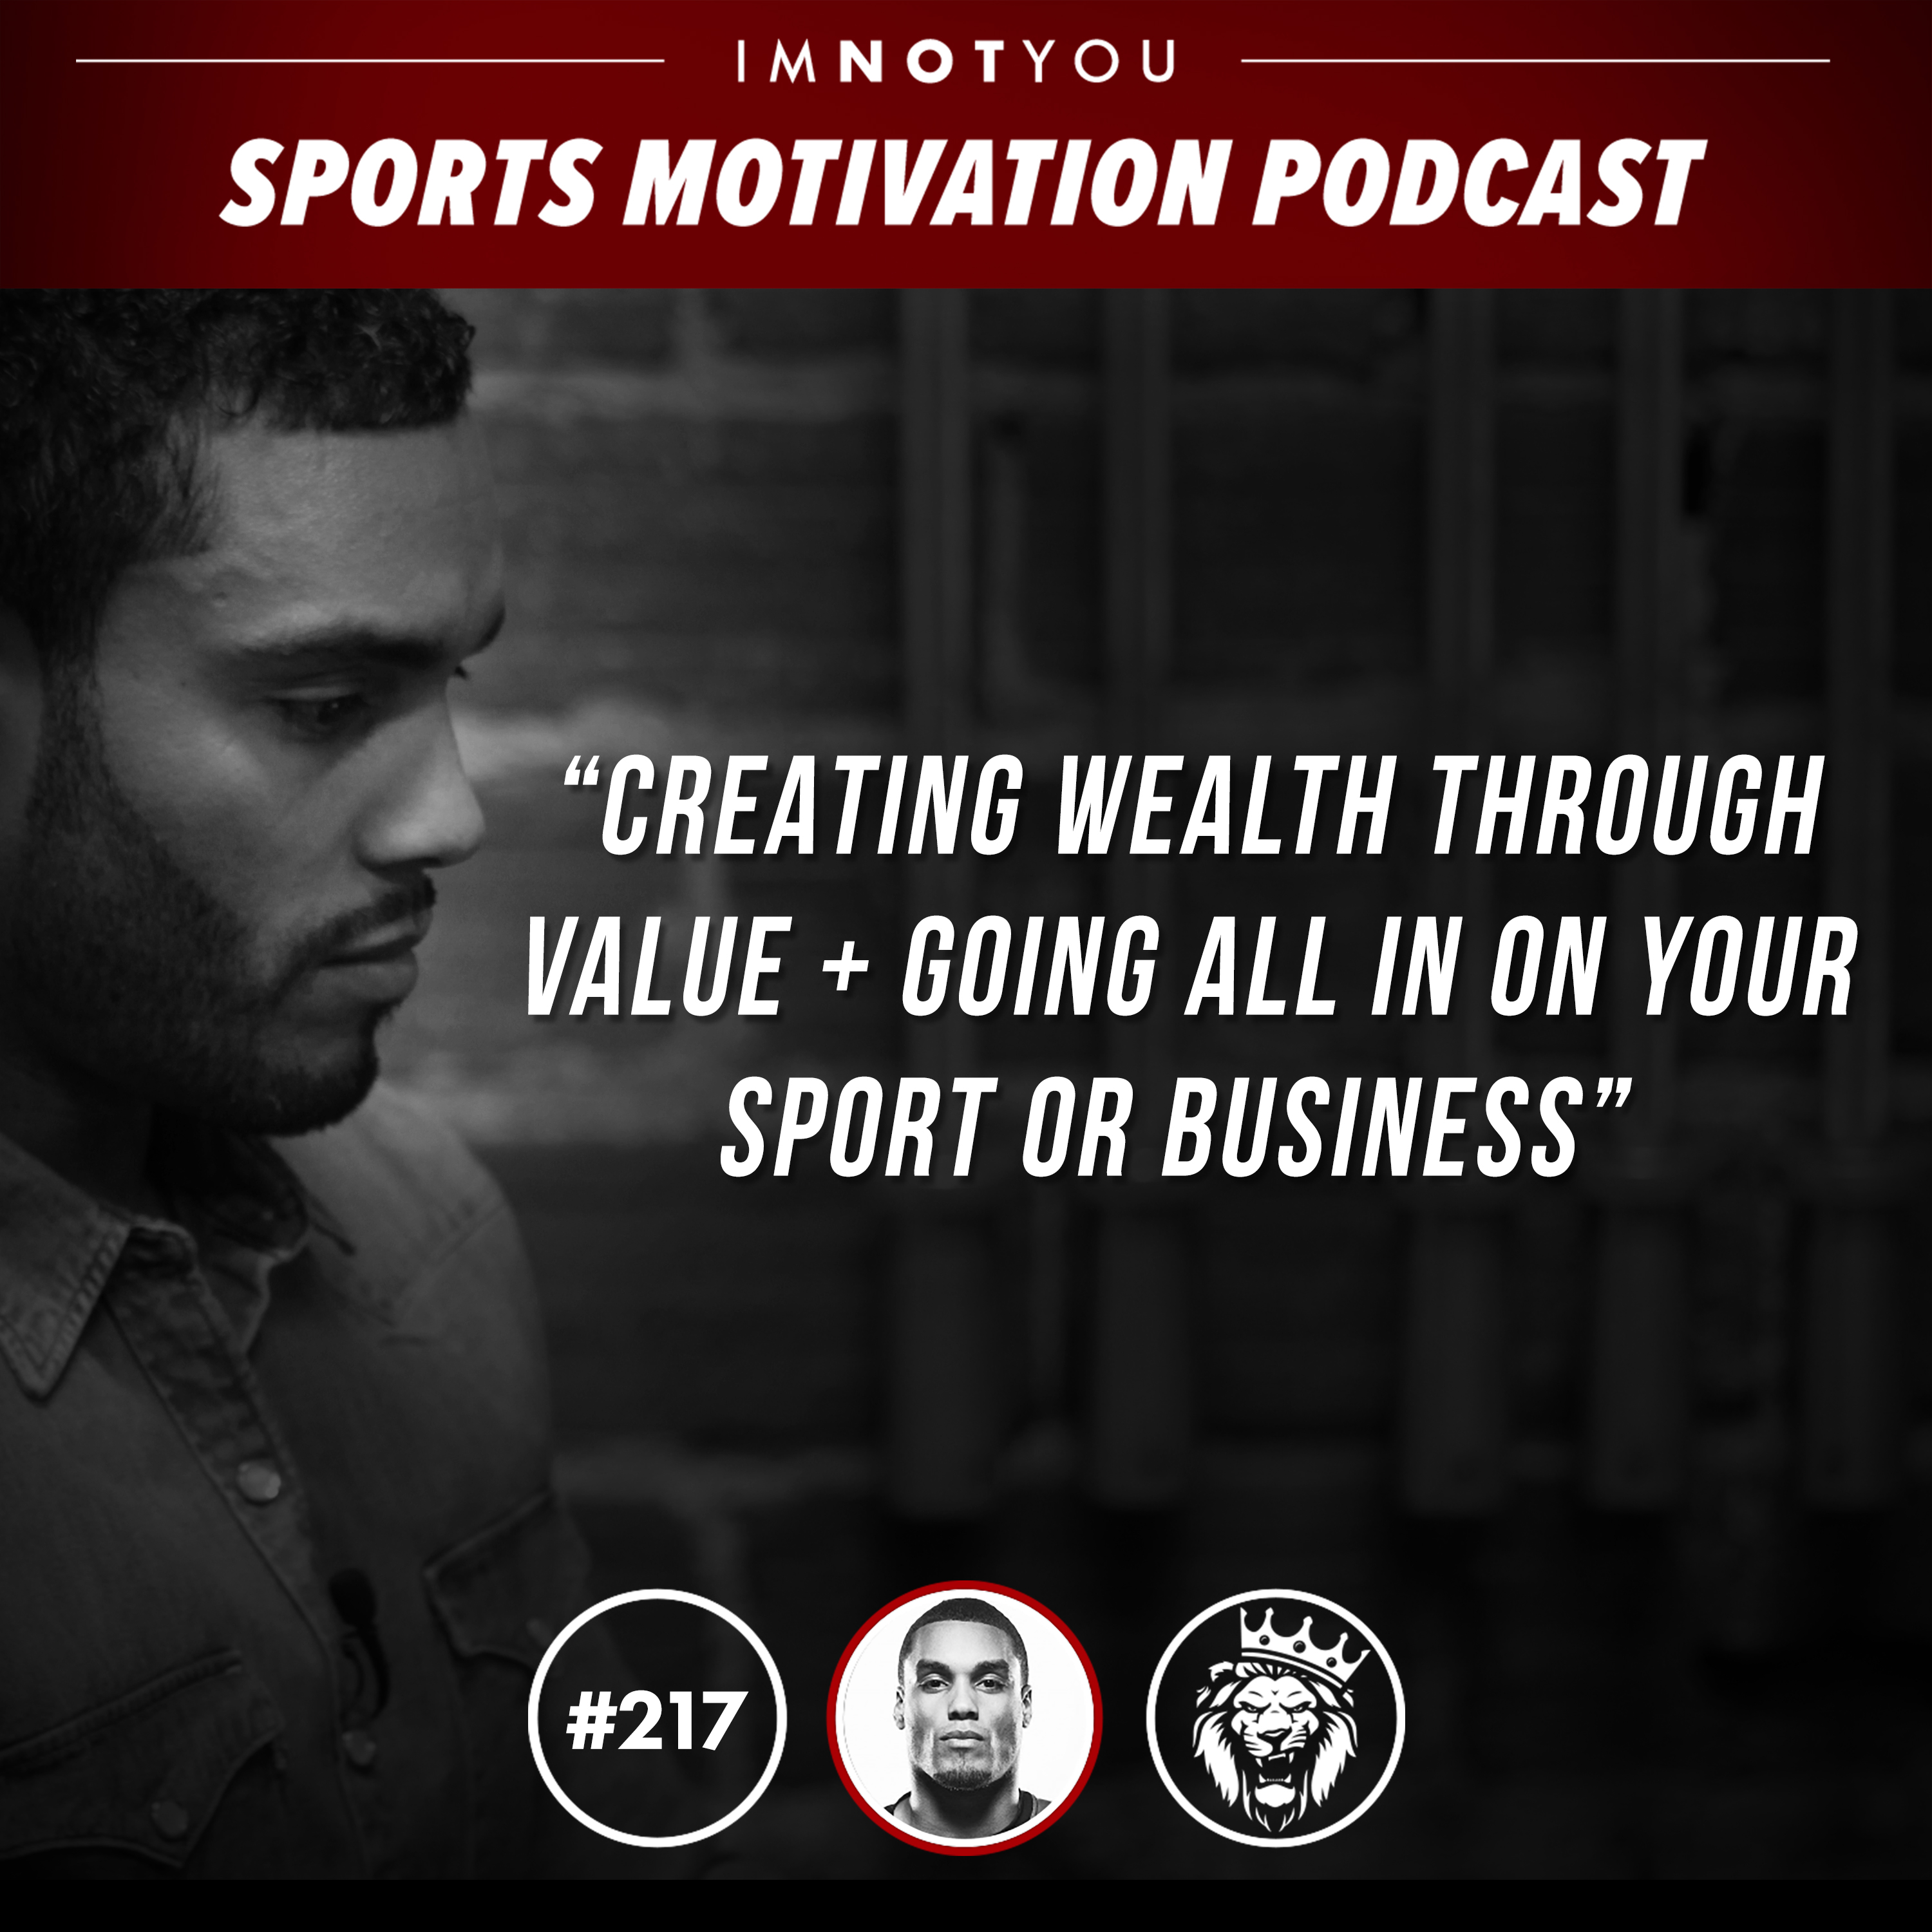 Creating Wealth through Value and going all in on your sport or business